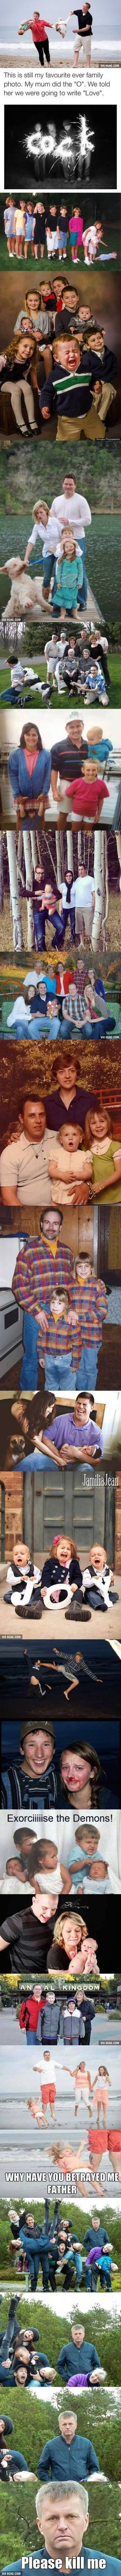 19 Family Photos Gone Wrong... Very Wrong